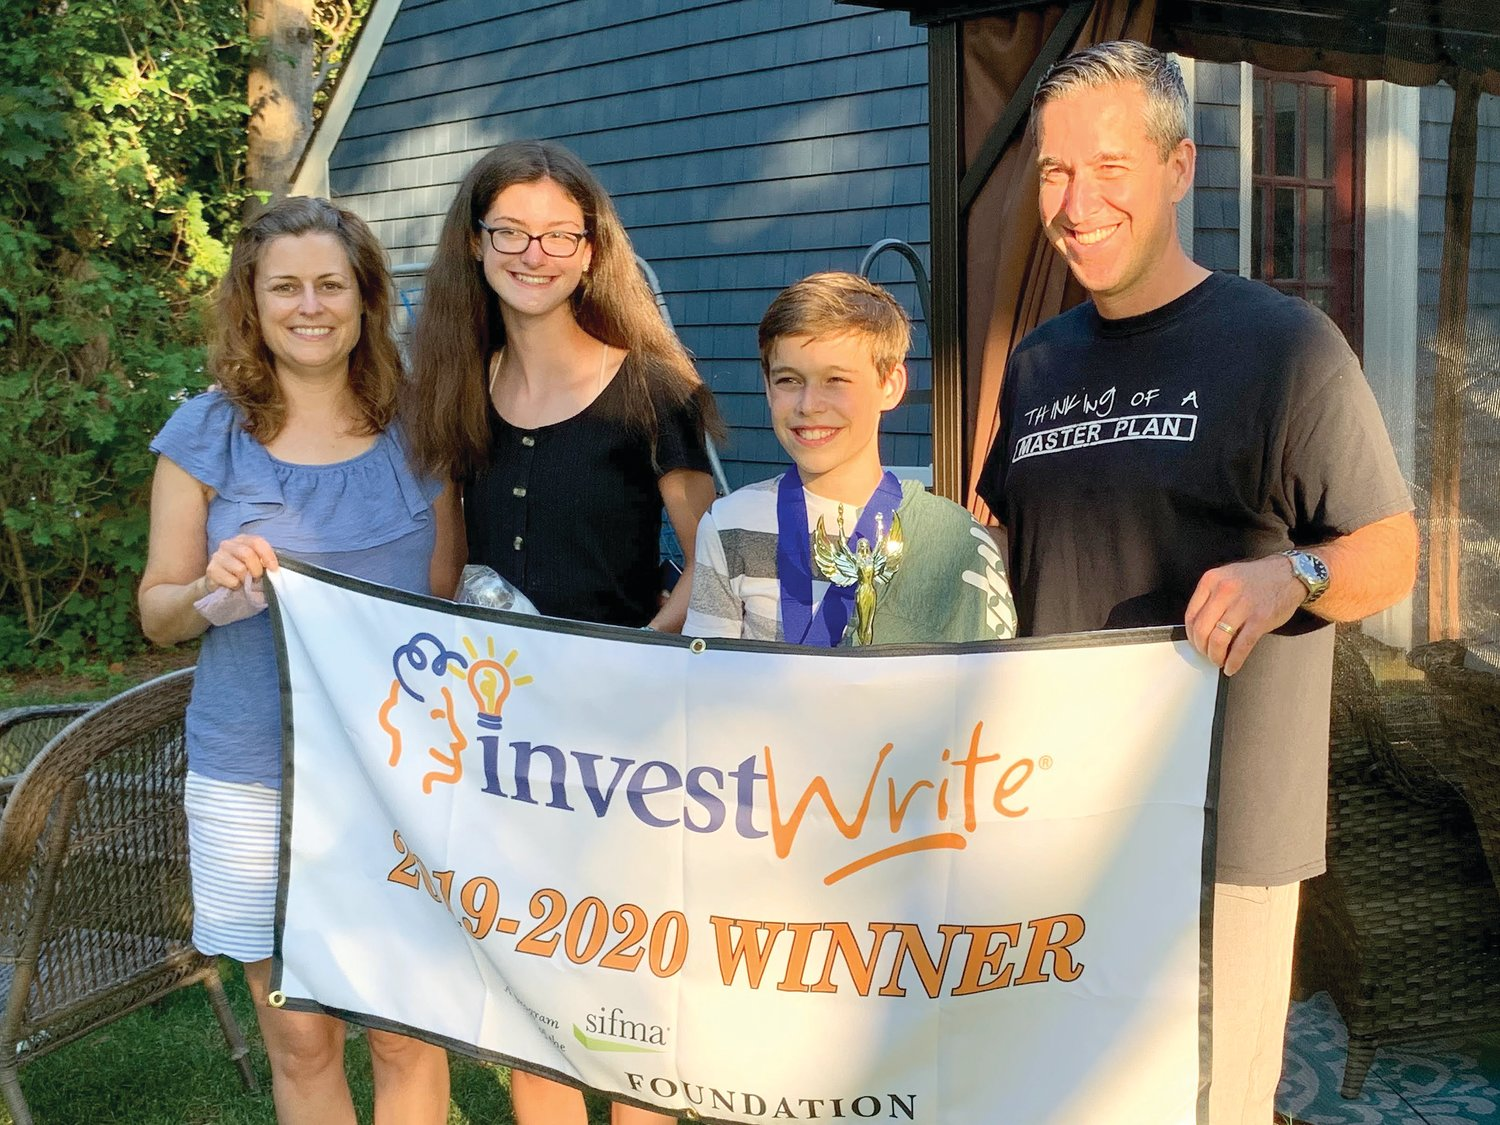 Evan Gendreau of Seekonk, Mass., smiles with his parents, Michael and Melanie, and sister Kelsey. The family was surprised at their home by Gendreau's teacher Laura Doliber and St. Margaret School Principal Lee Ann Nunes, who informed Evan that he had won the National InvestWrite® Competition.